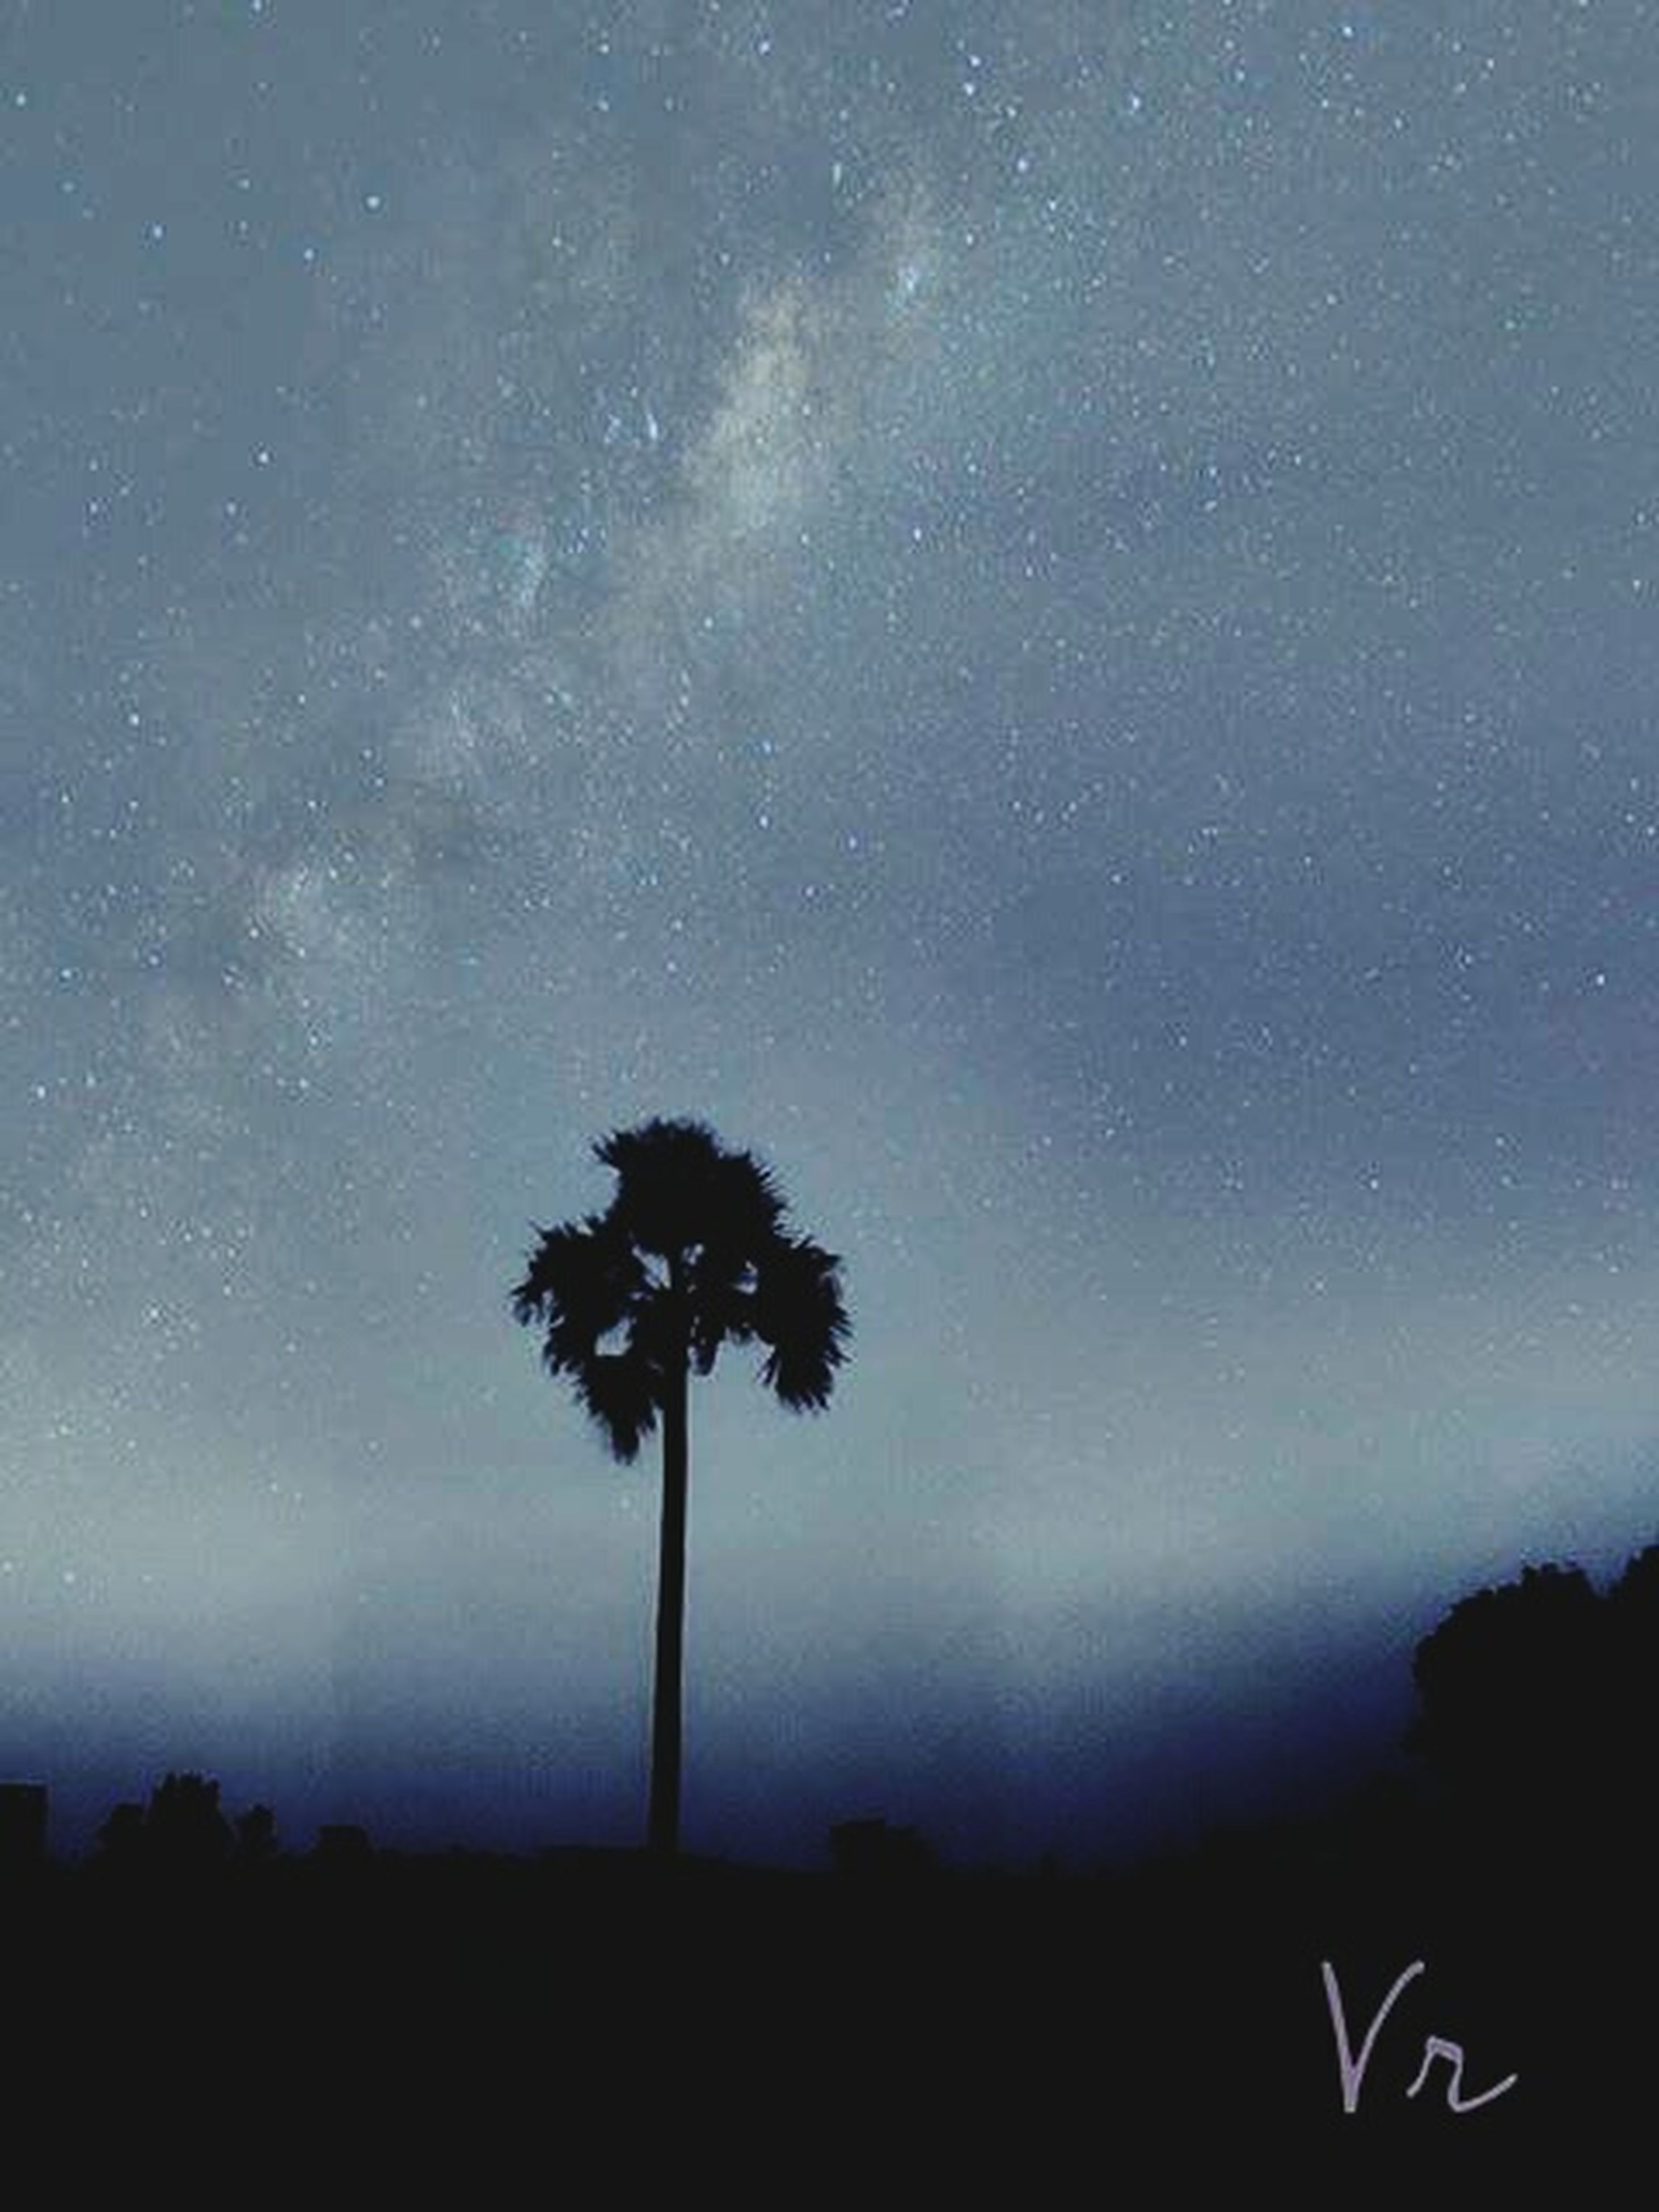 silhouette, tree, sky, tranquility, beauty in nature, low angle view, tranquil scene, scenics, nature, dusk, night, landscape, dark, growth, palm tree, outline, idyllic, outdoors, no people, field